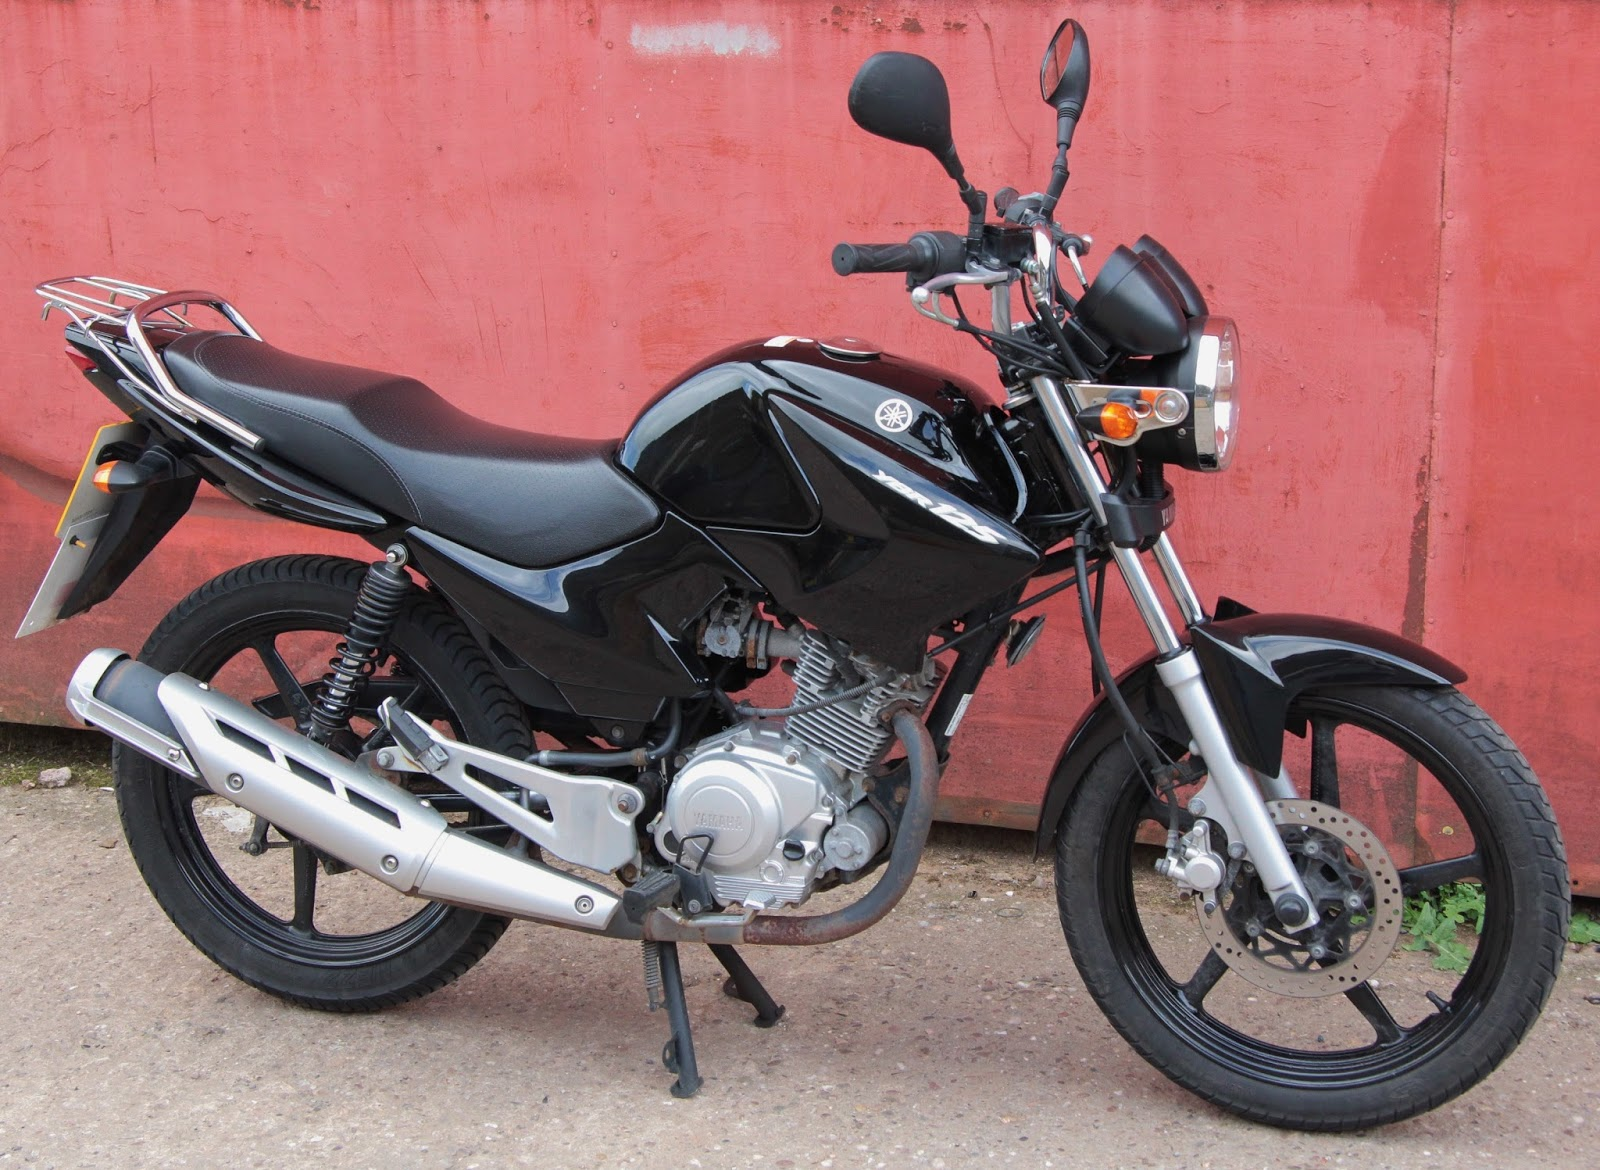 yamaha ybr 125 owner blog yamaha ybr 125 for sale uk. Black Bedroom Furniture Sets. Home Design Ideas